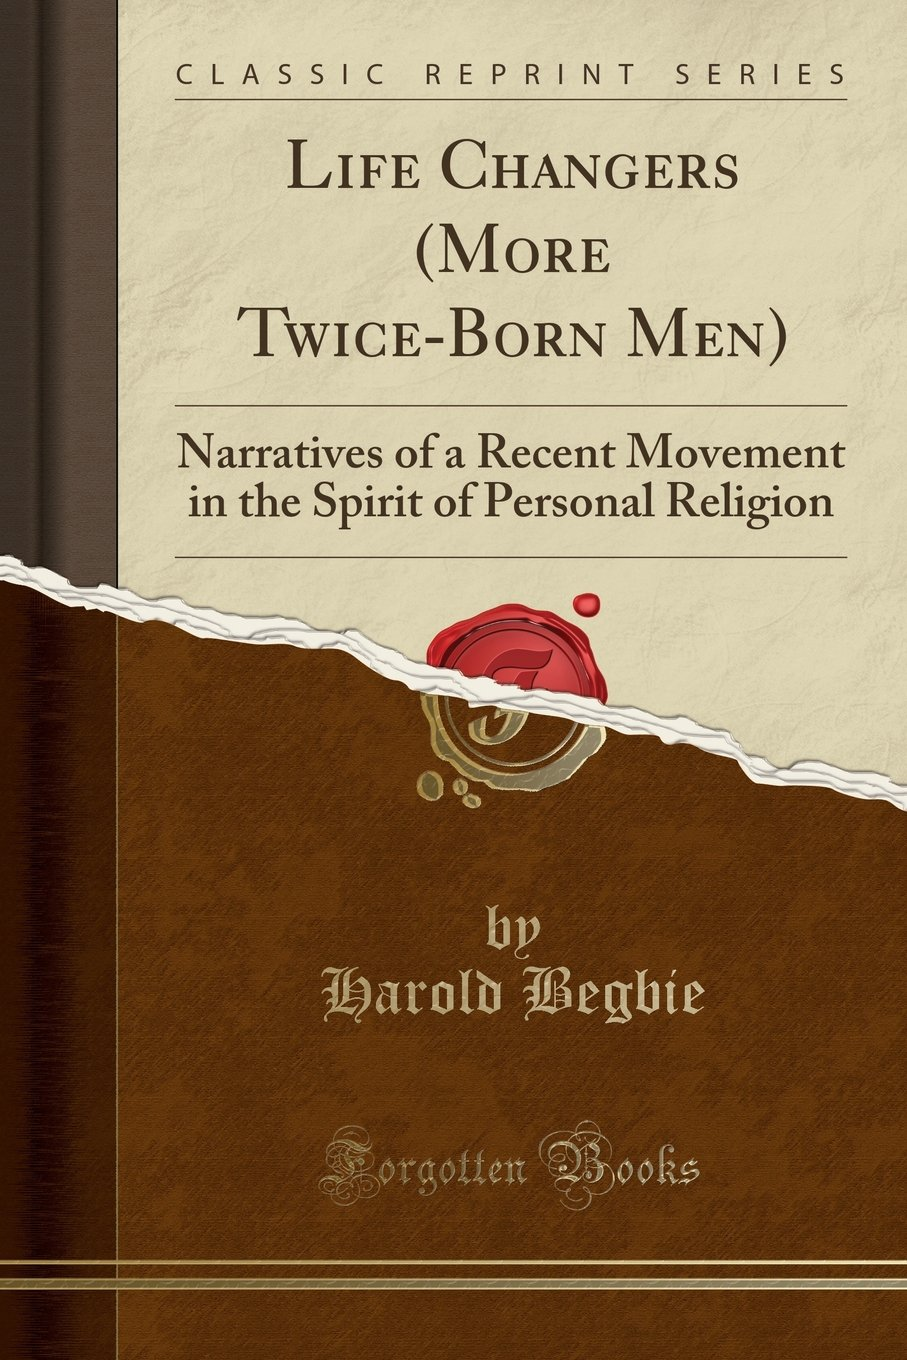 Download Life Changers (More Twice-Born Men): Narratives of a Recent Movement in the Spirit of Personal Religion (Classic Reprint) pdf